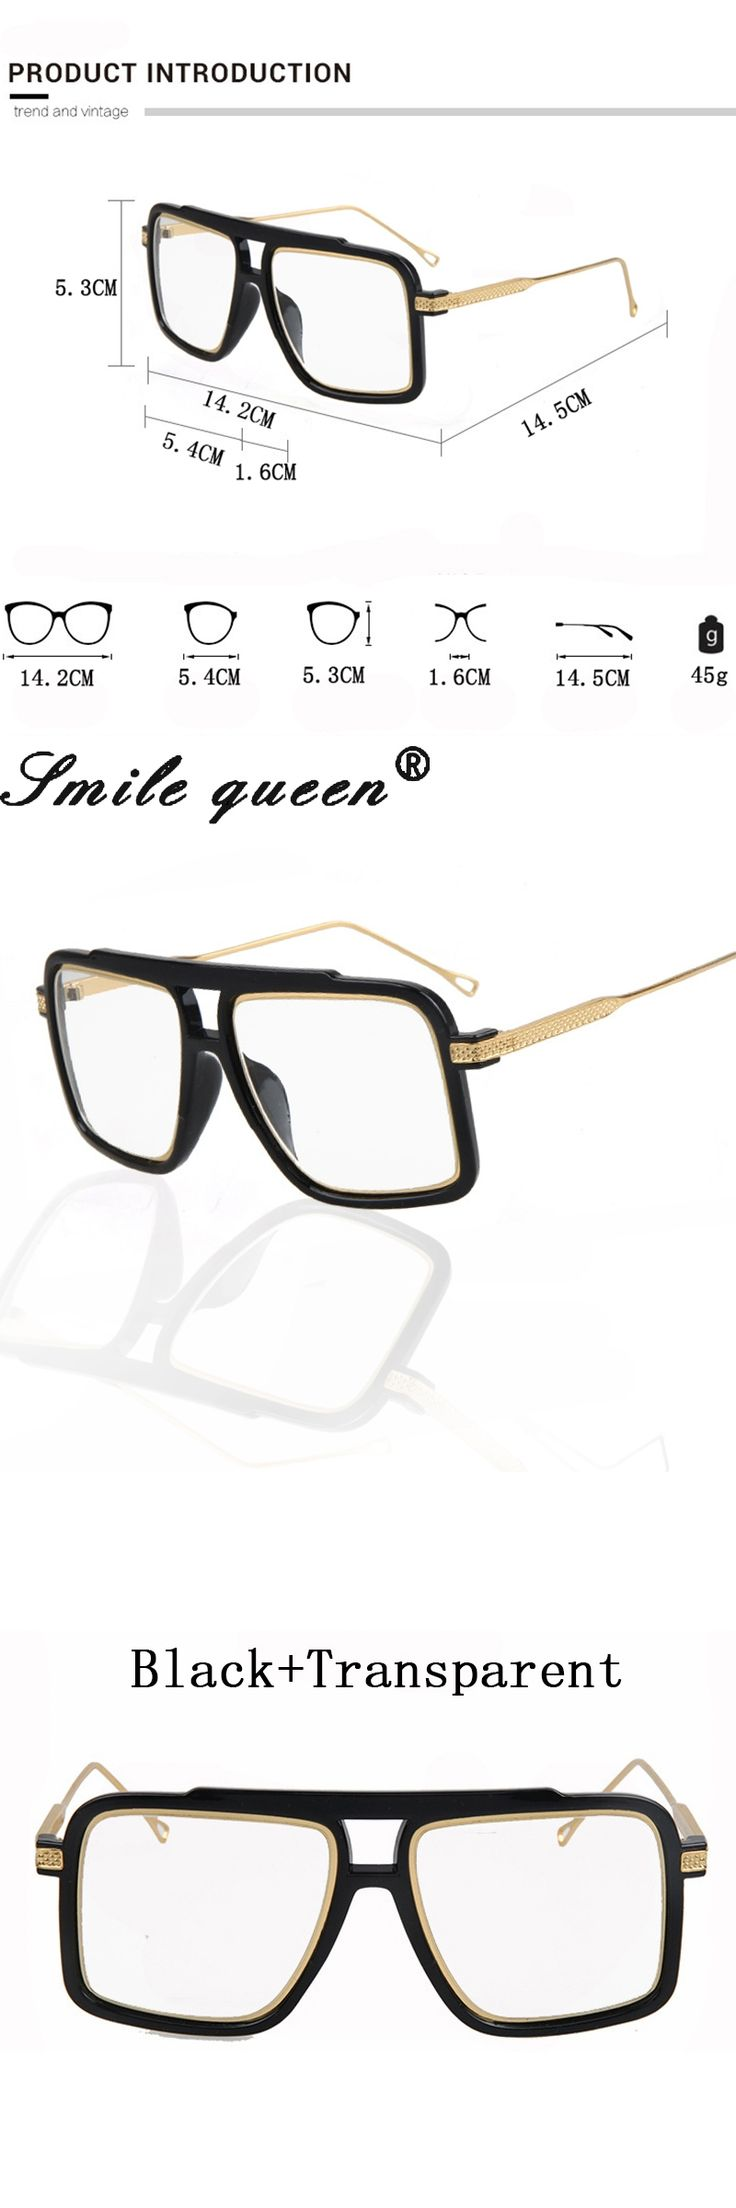 Square Flat Top Glasses Frame Famous Brand Designer Glasses Men 18K Gold Metal Frame Mirror Clear Glasses Lentes Opticos Mujer